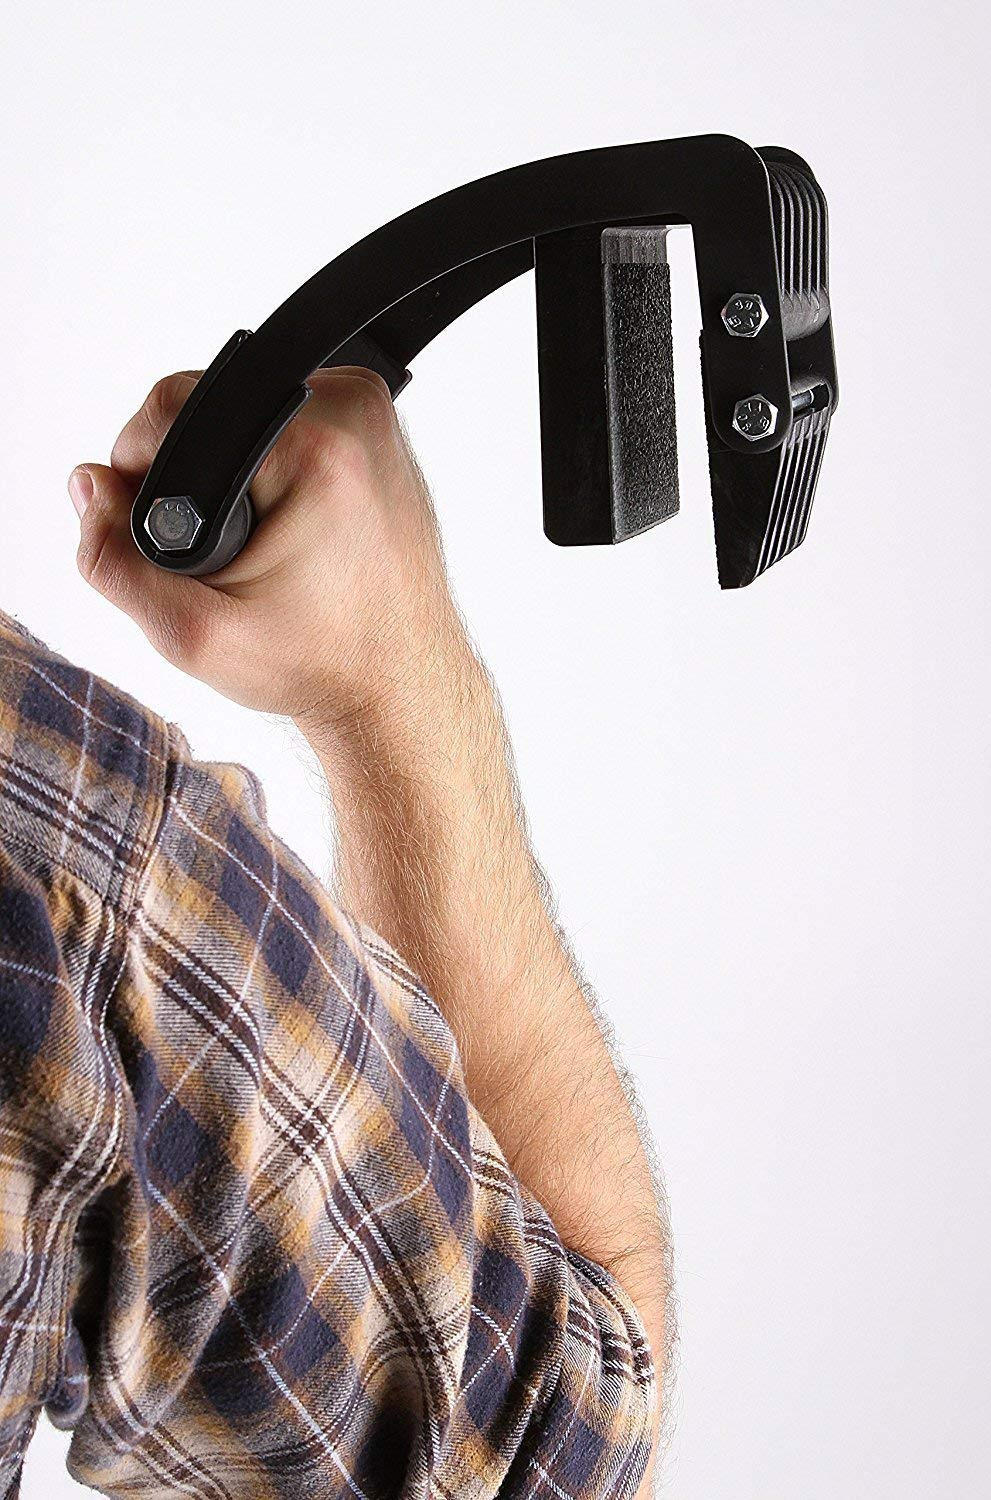 Powerful Gorilla Gripper Sturdy Roughneck Premium Board Lifter for Carrying Cumbersome Board.